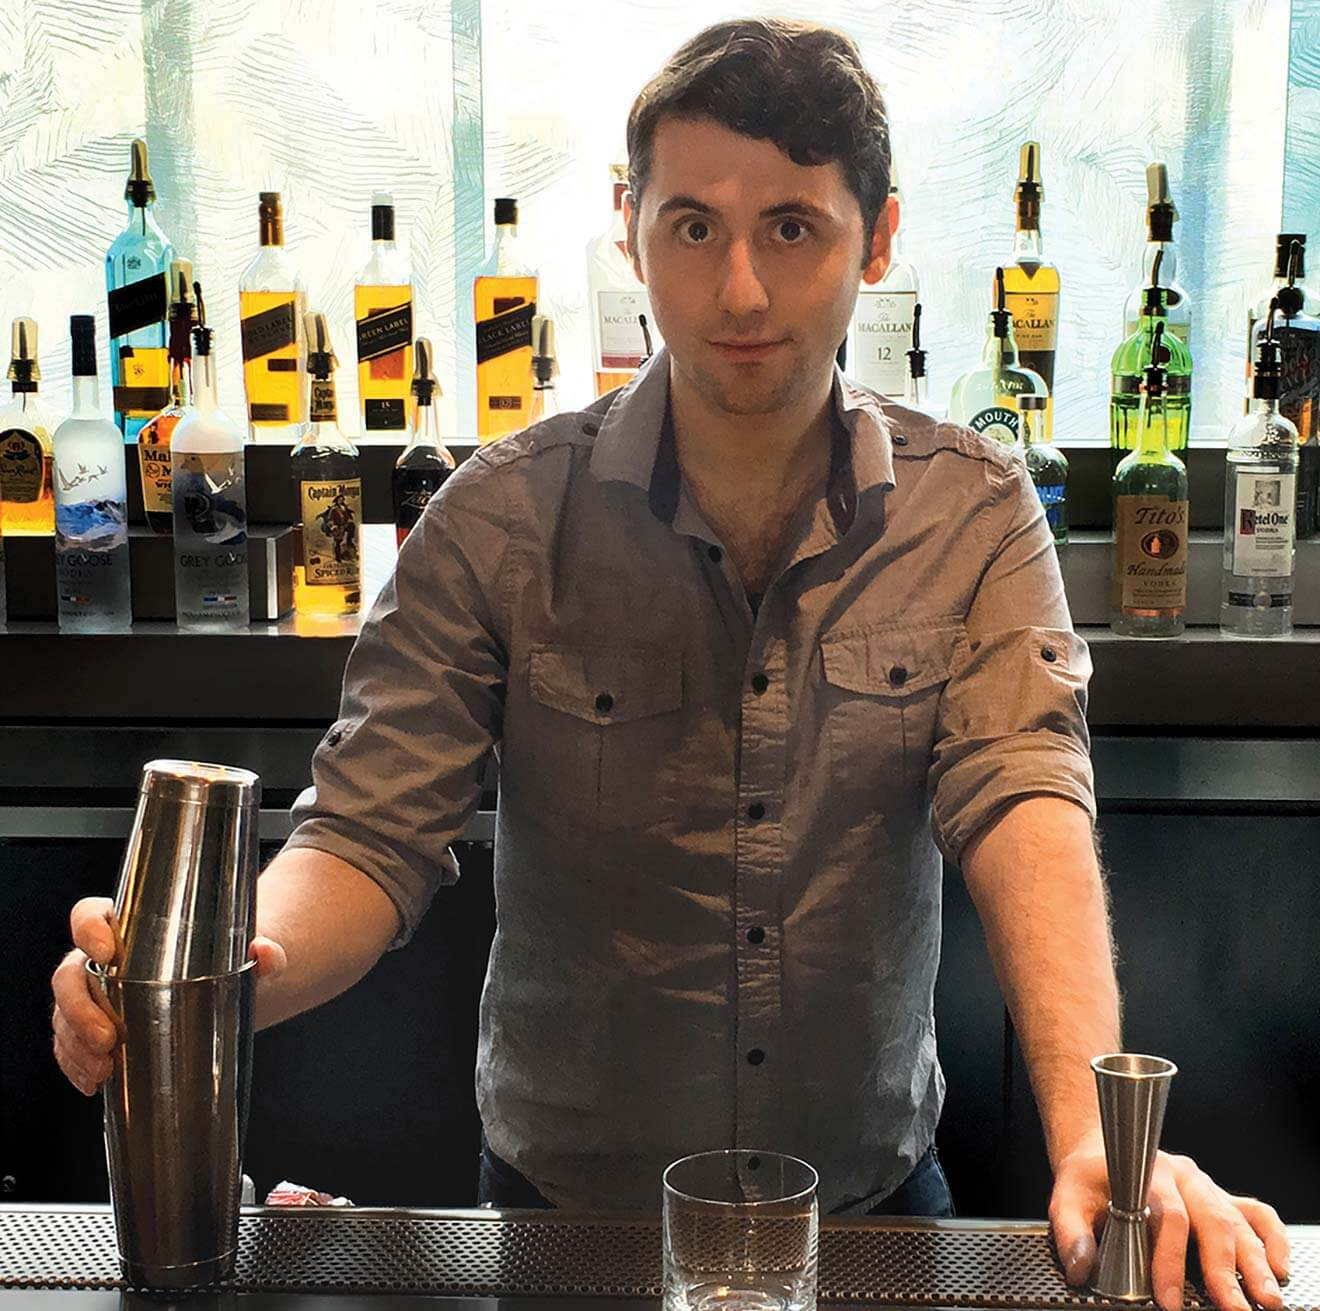 Mixologist and Chilled 100 Ambassador, Zach McGrath